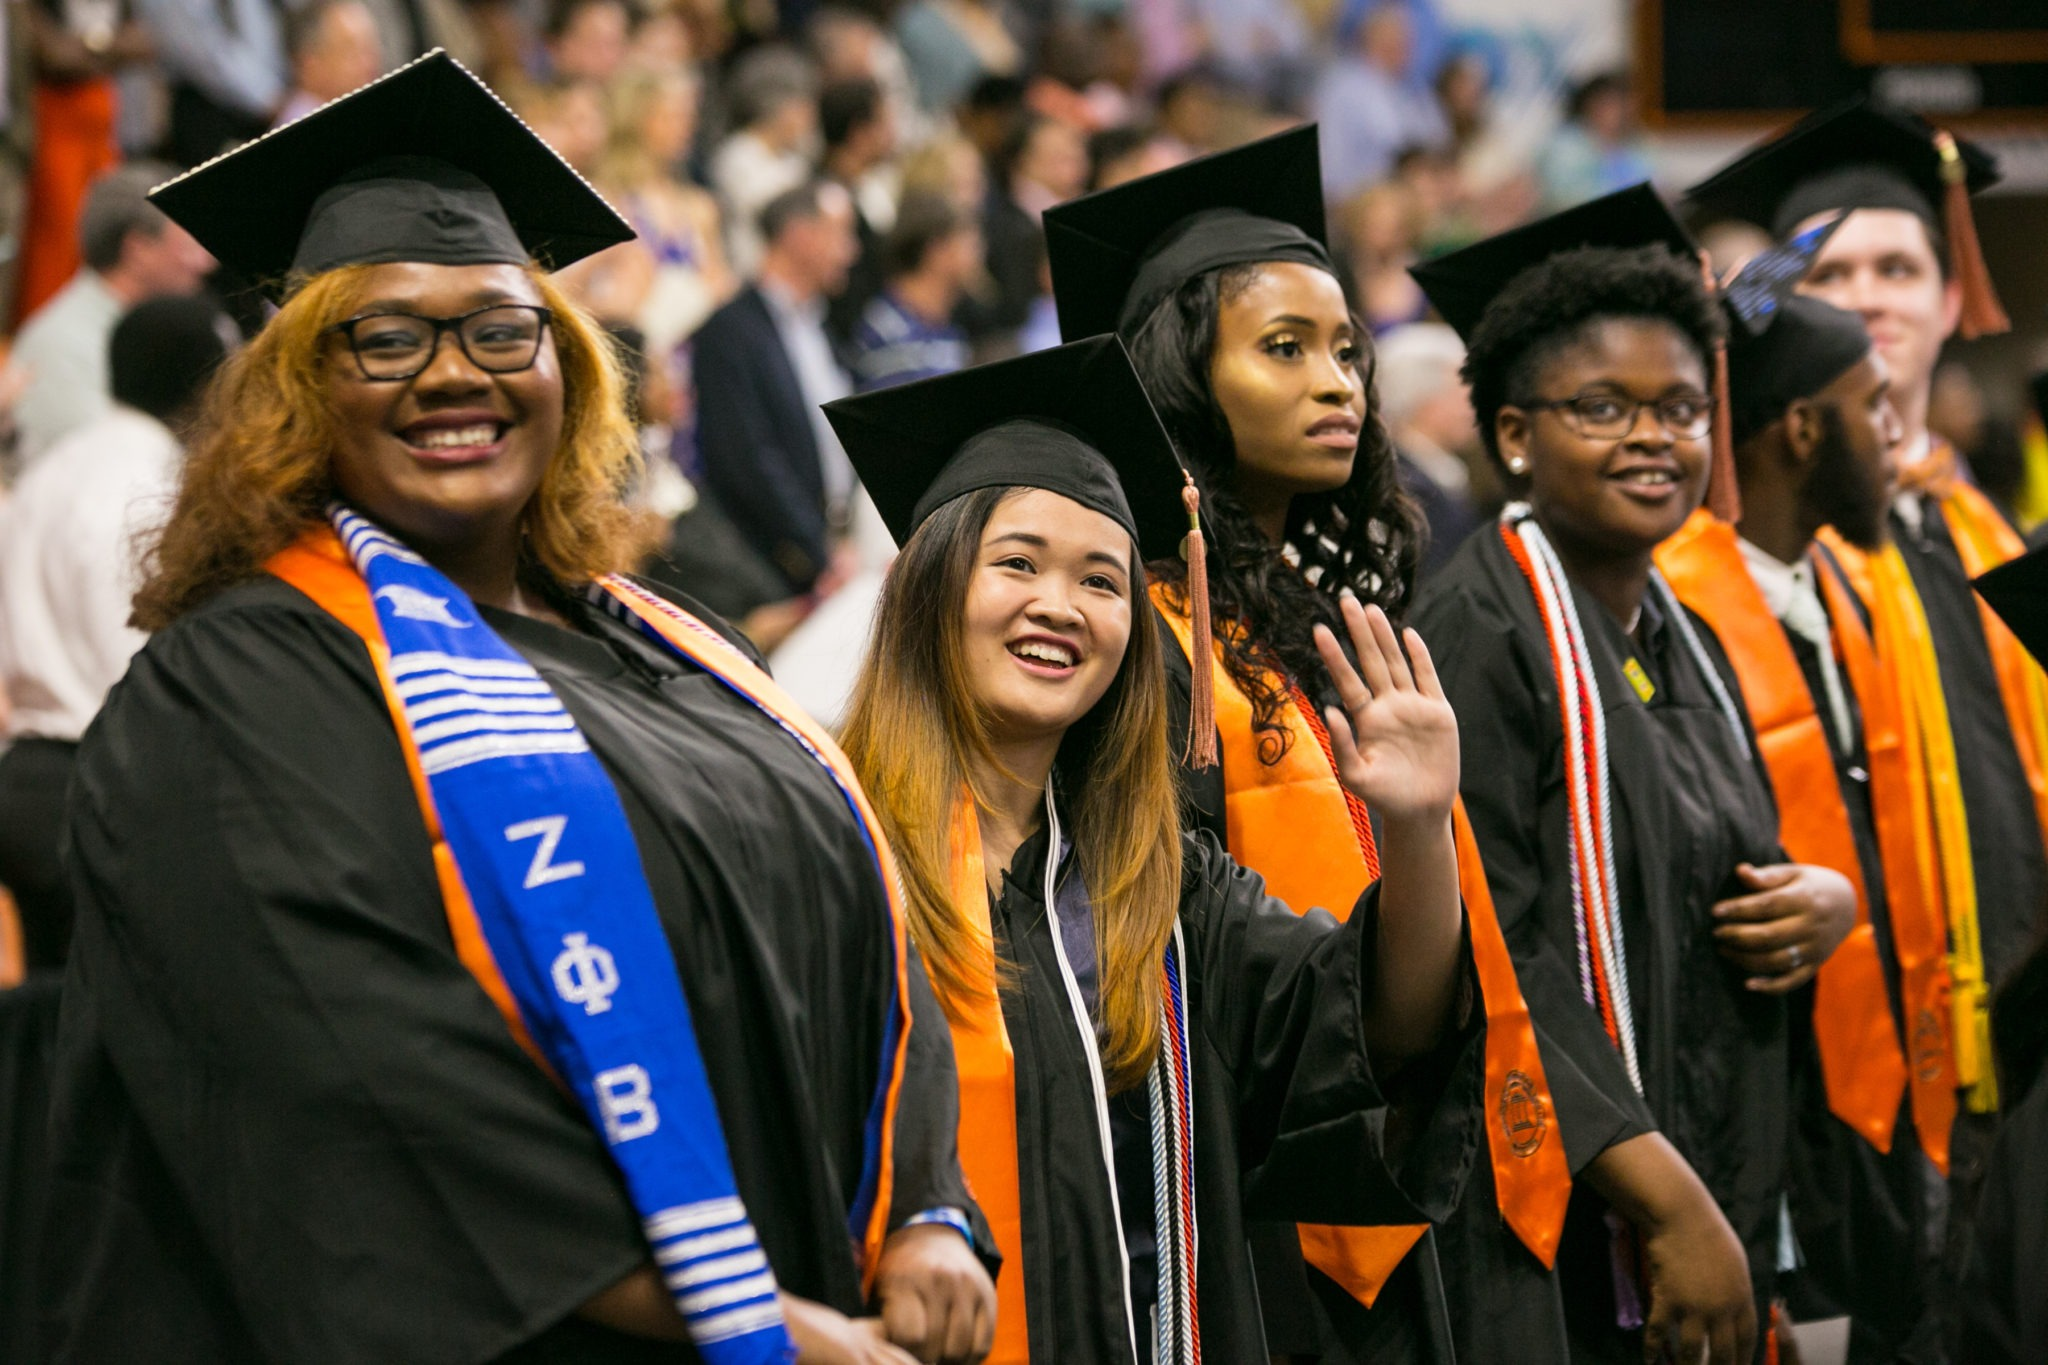 Students are shown in their caps and gown at 2018 commencement in 2018.